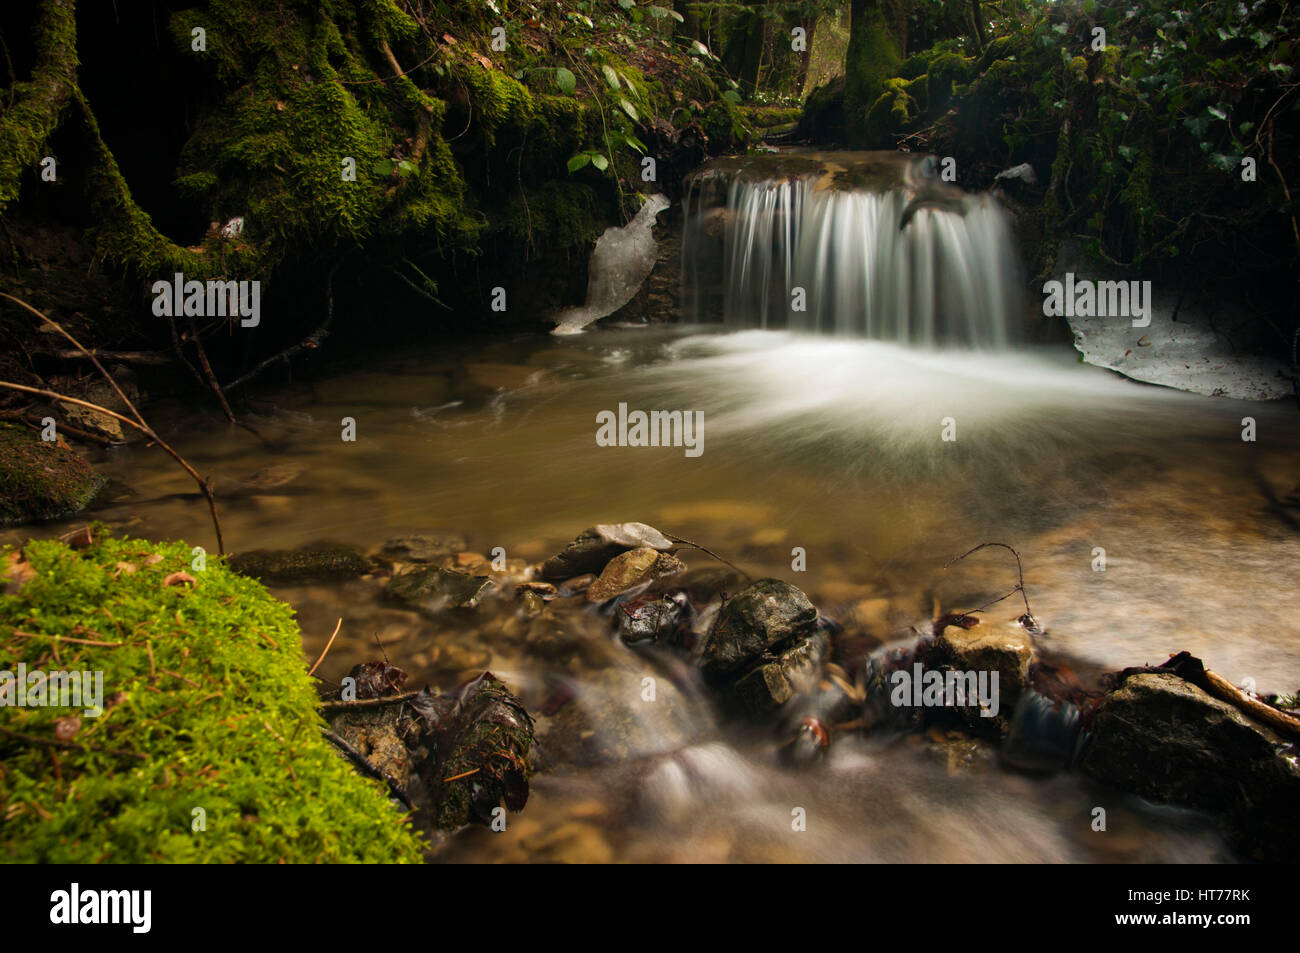 River in the forest close to Vevey, Switzerland - Stock Image